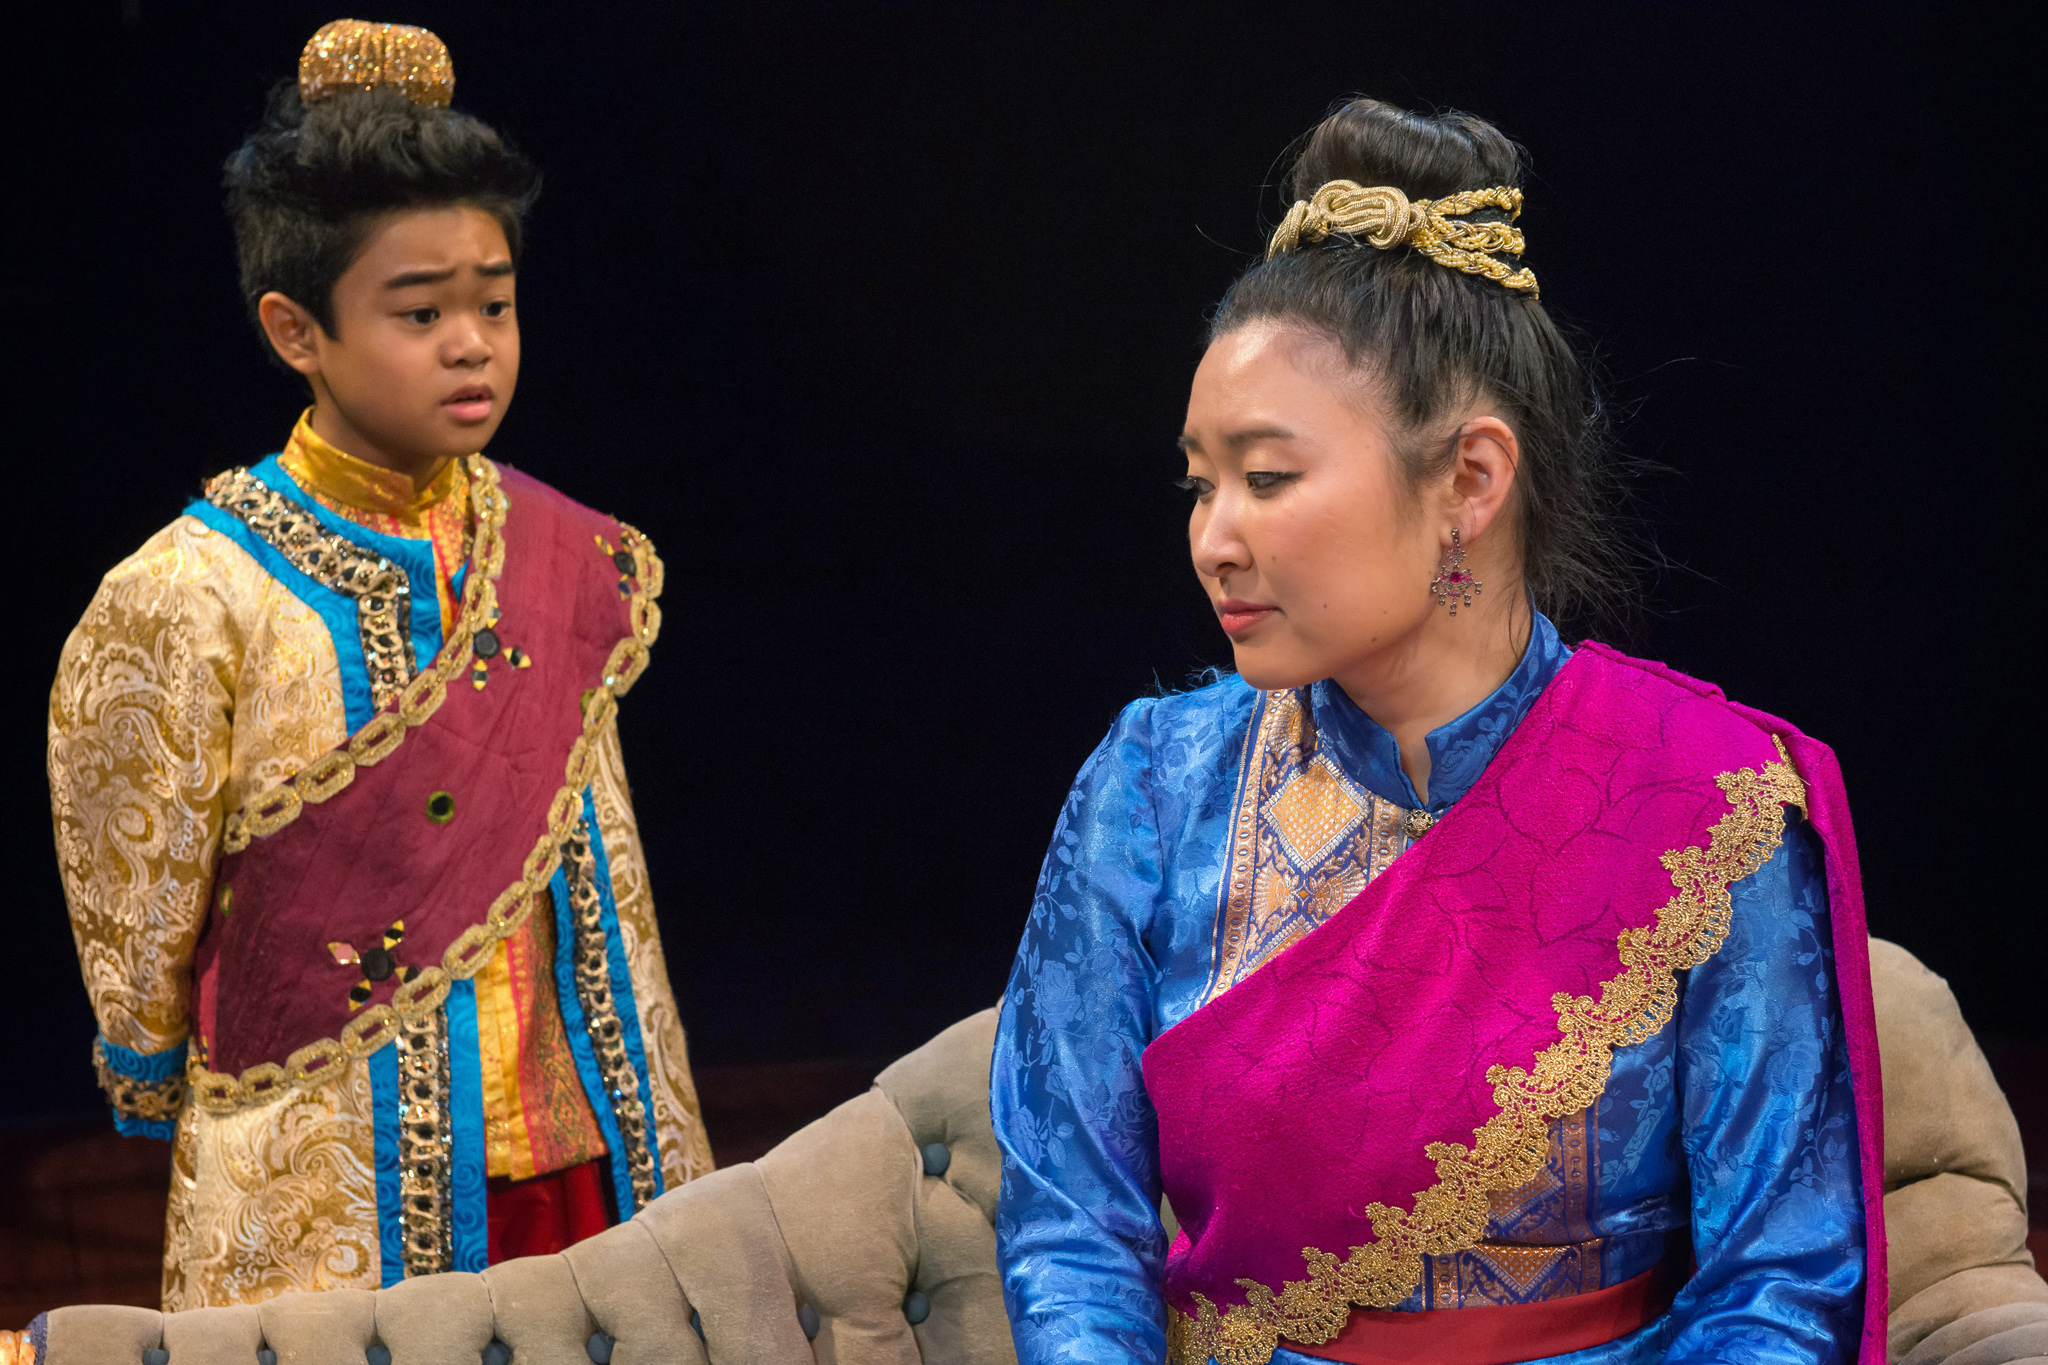 Matthew Uzarraga and Kristen Choi in The King and I at Marriott Theatre